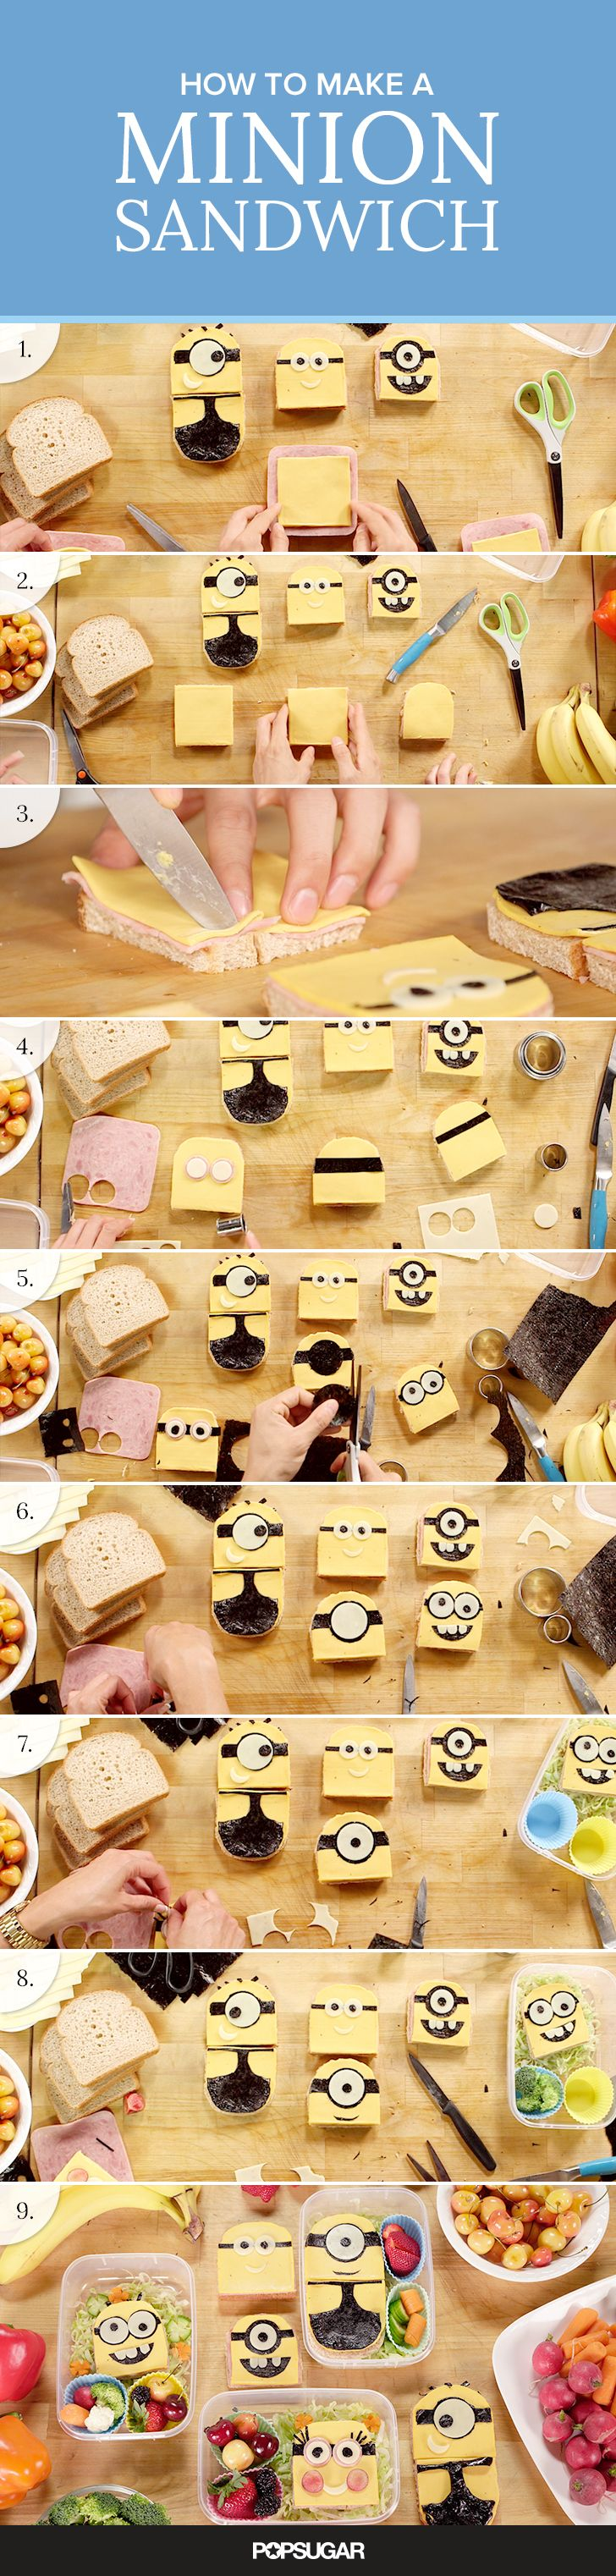 We've turned the Minions into an adorably despicable edible bento box sandwich. This lunch idea is great for kids and adults alike and is a perfect way to celebrate the Minions' big-screen debut!